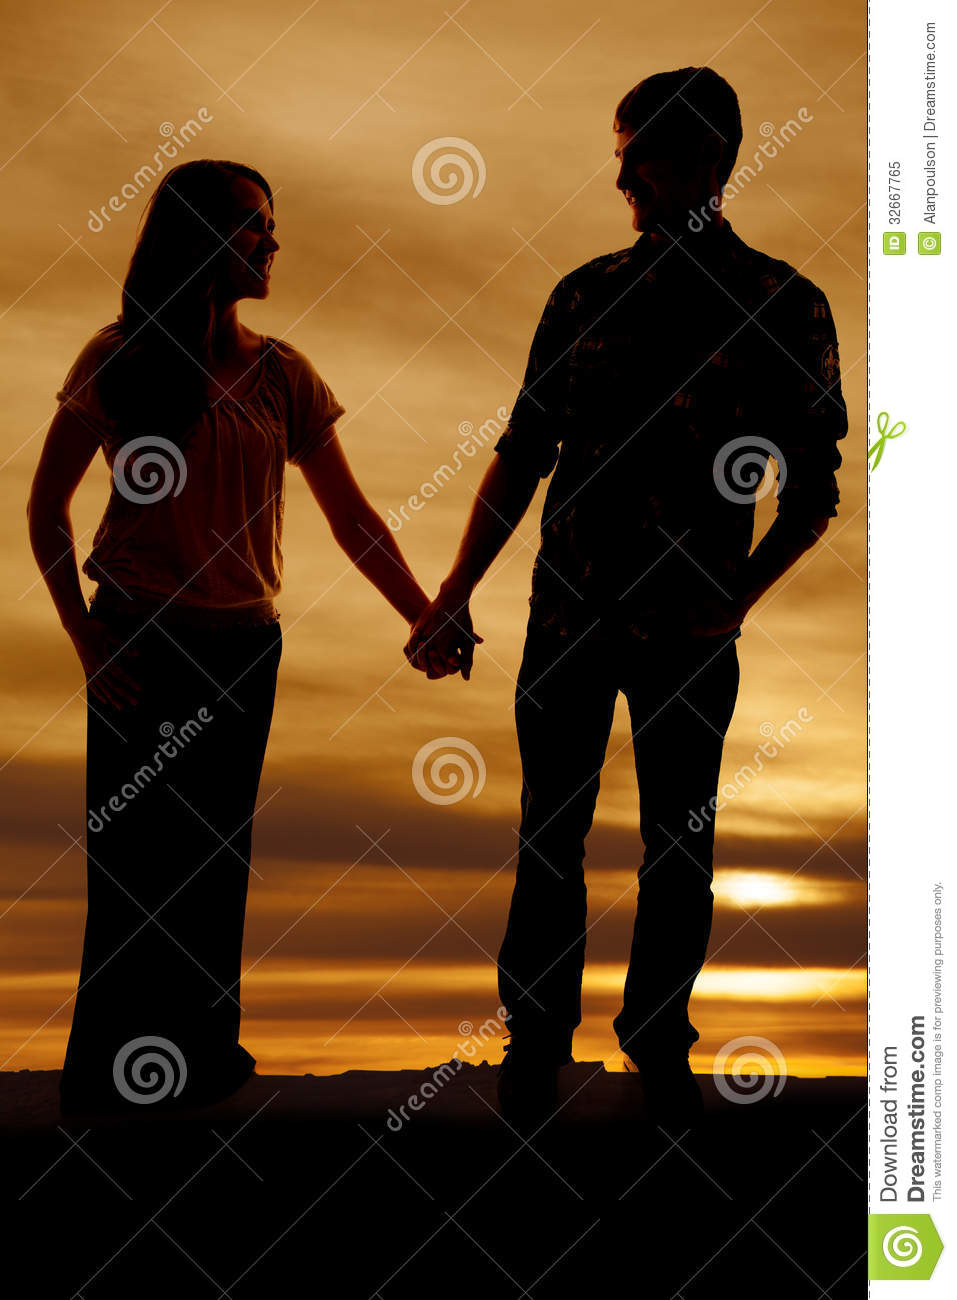 Silhouette Of Man And Woman Holding Hands Royalty Free ...